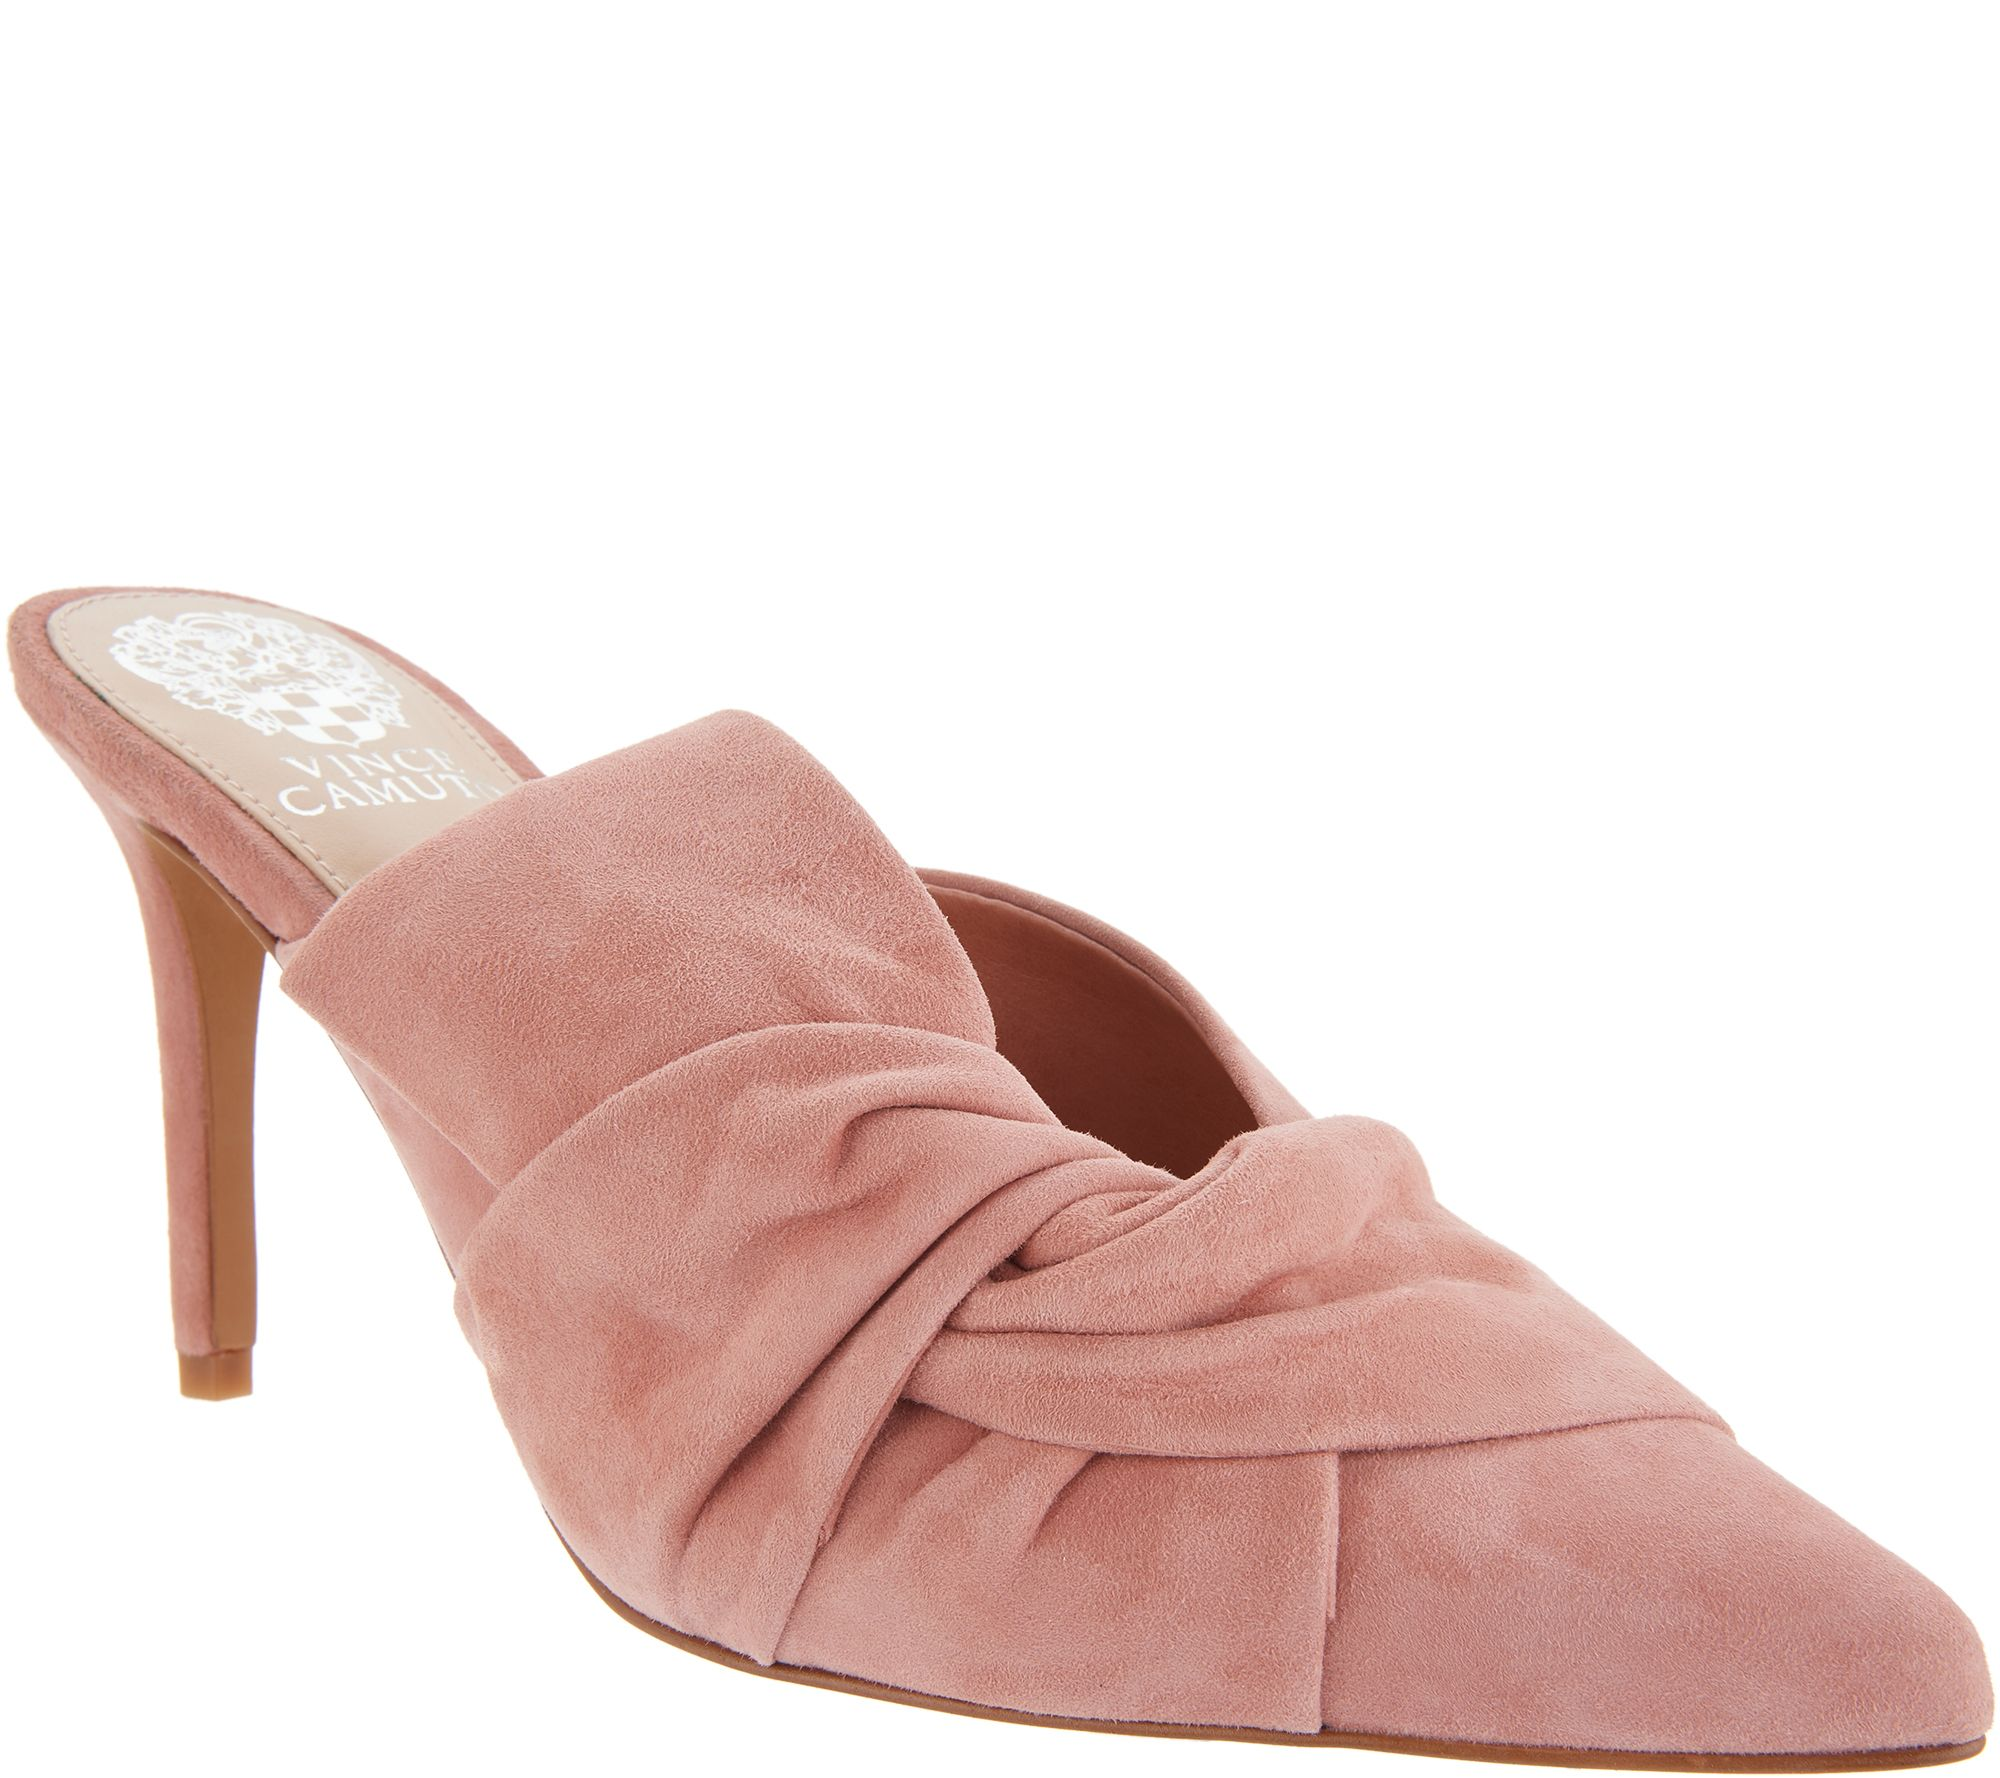 2aa8aa90c04 Vince Camuto Suede Slip-On Heeled Mules - Amillada - Page 1 — QVC.com